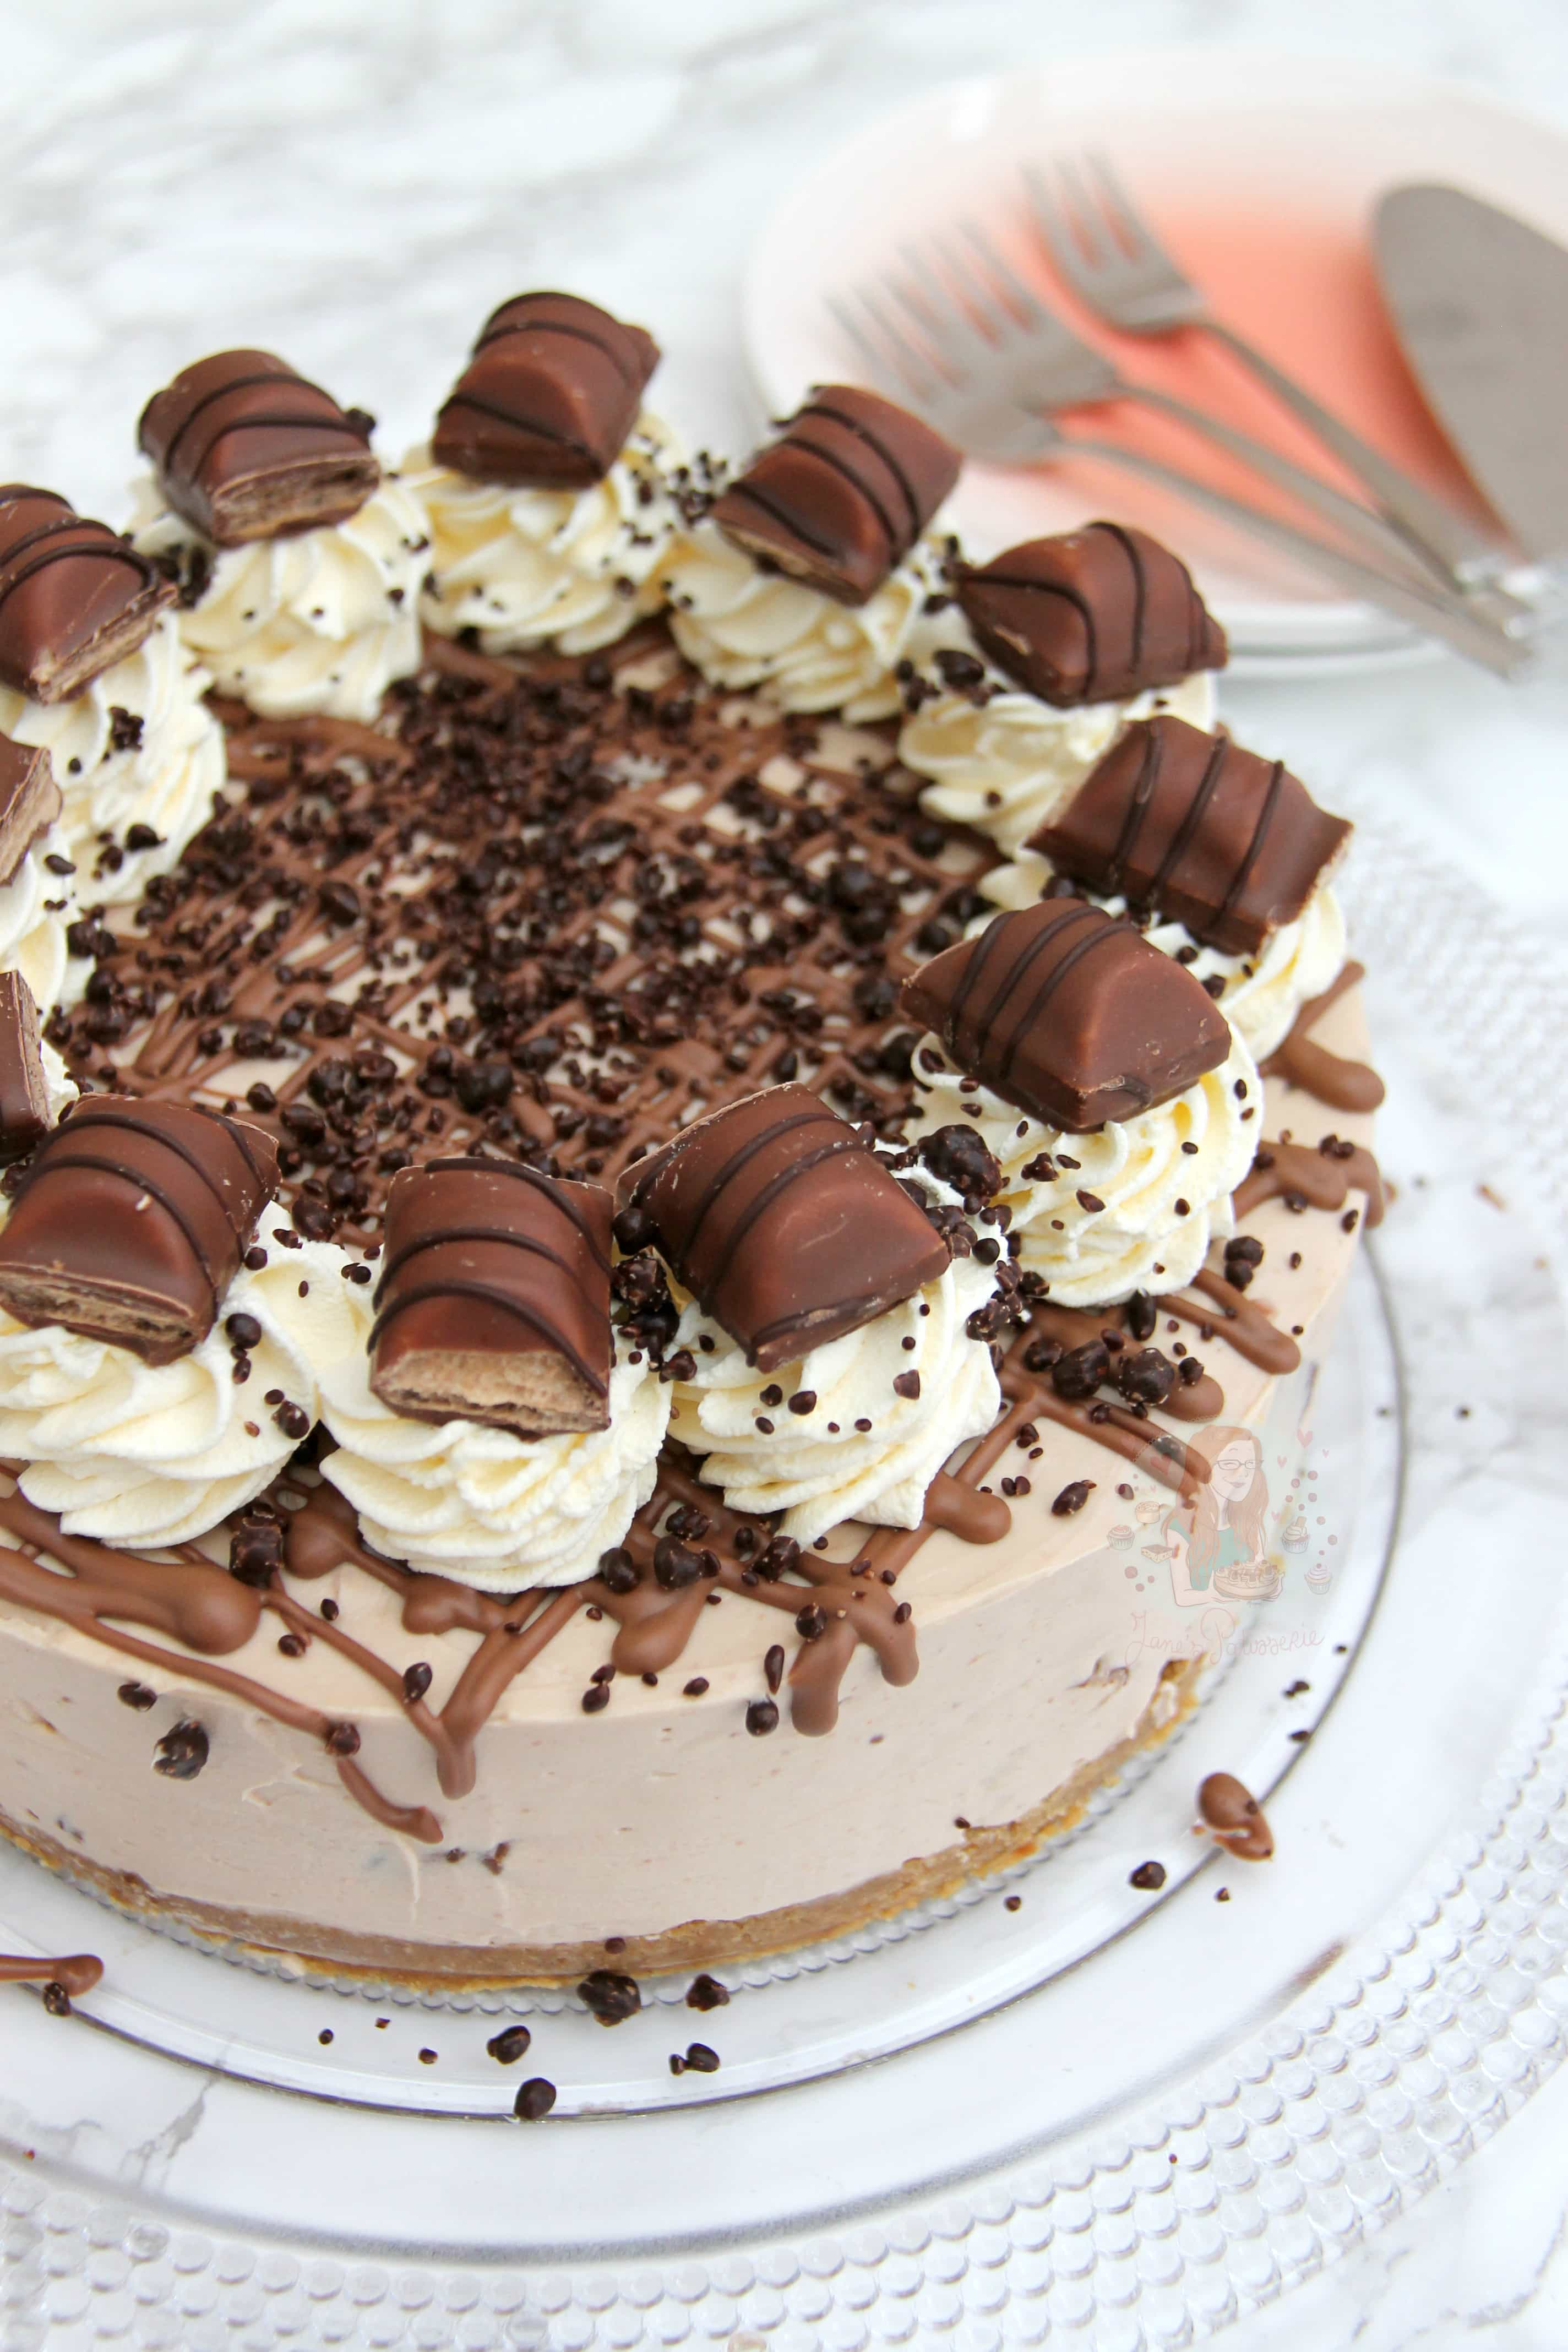 Populaire No-Bake Kinder Bueno Cheesecake! - Jane's Patisserie QZ44